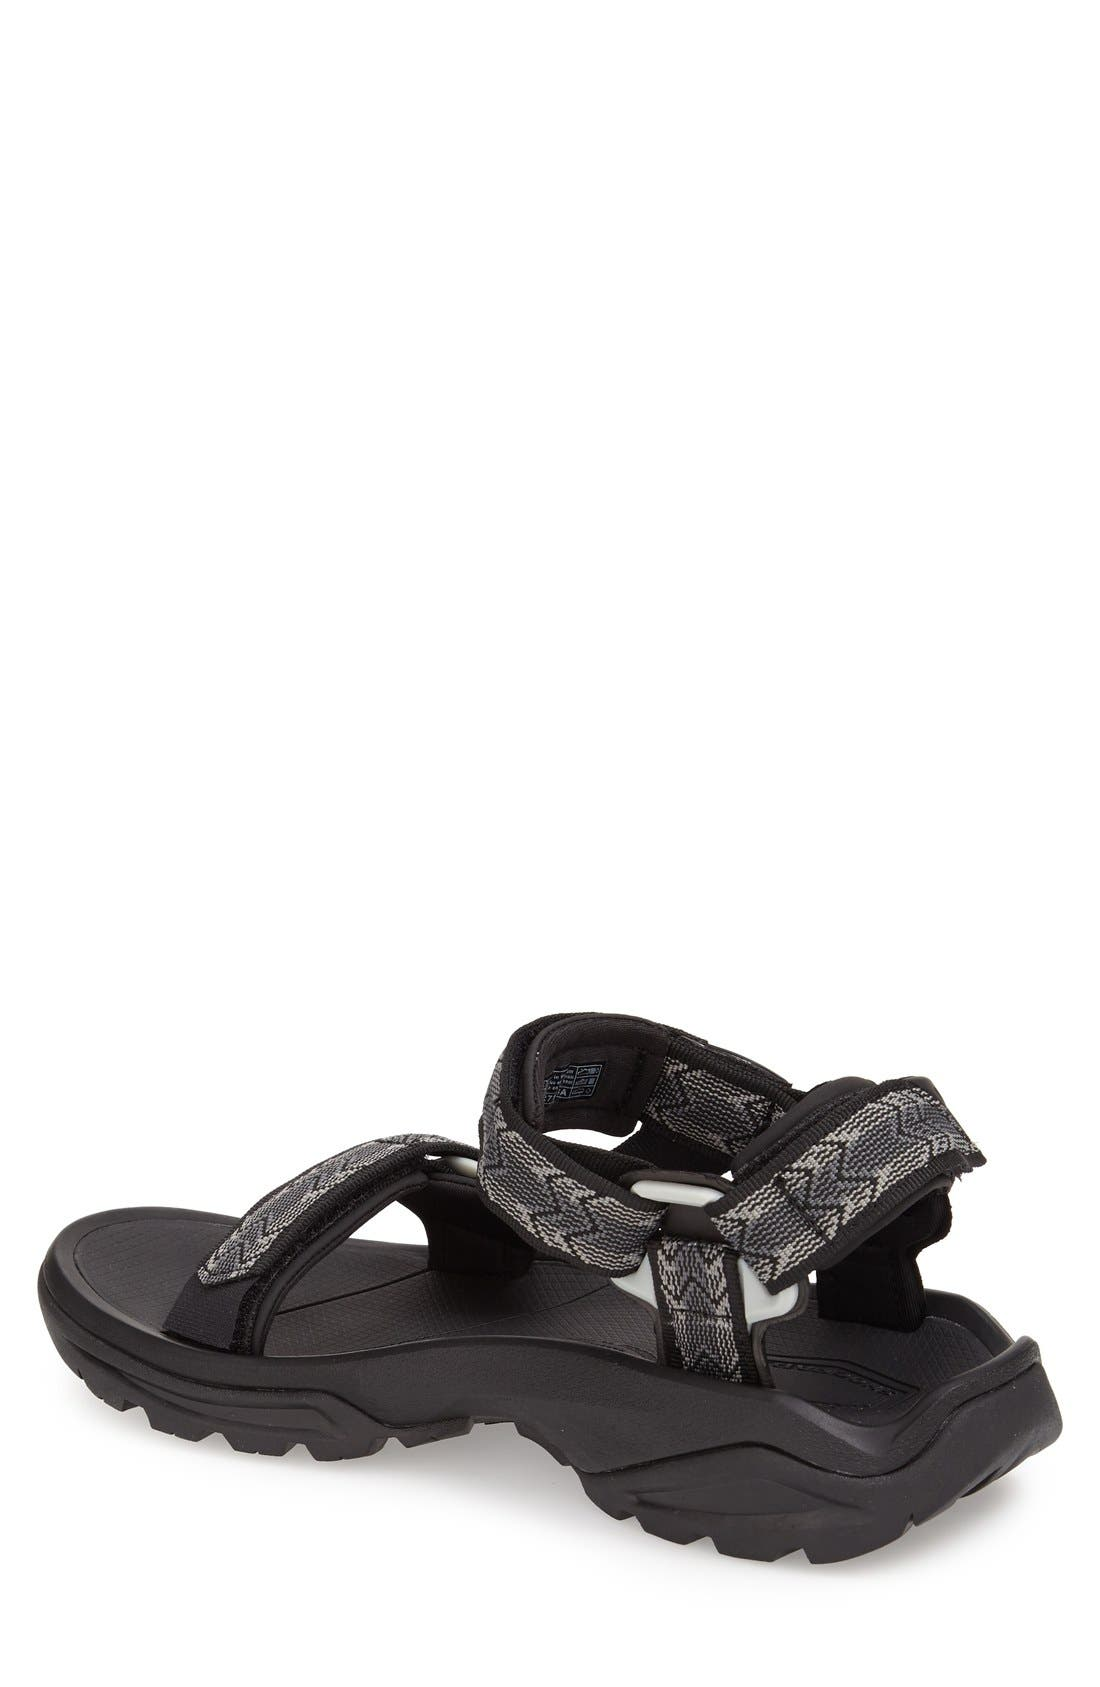 'Terra Fi 4' Sandal,                             Alternate thumbnail 6, color,                             CROSS TERRA BLACK